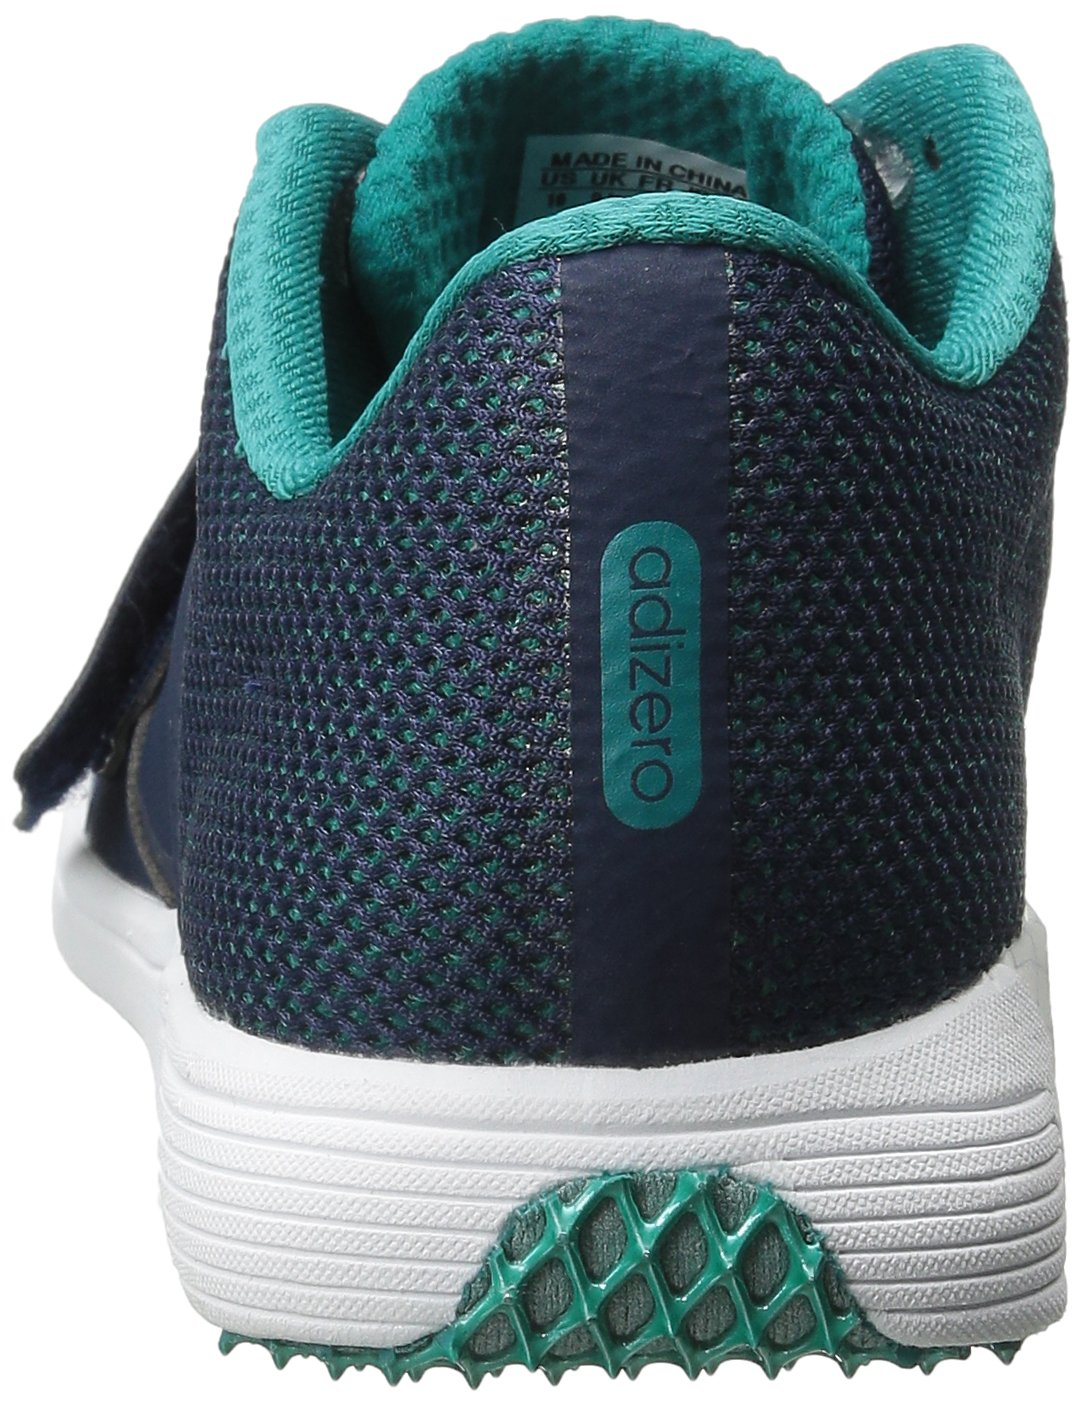 adidas Performance Women's Adizero TJ/PV Running Shoe with Spikes,Collegiate Navy/White/Green,15 M US by adidas (Image #2)